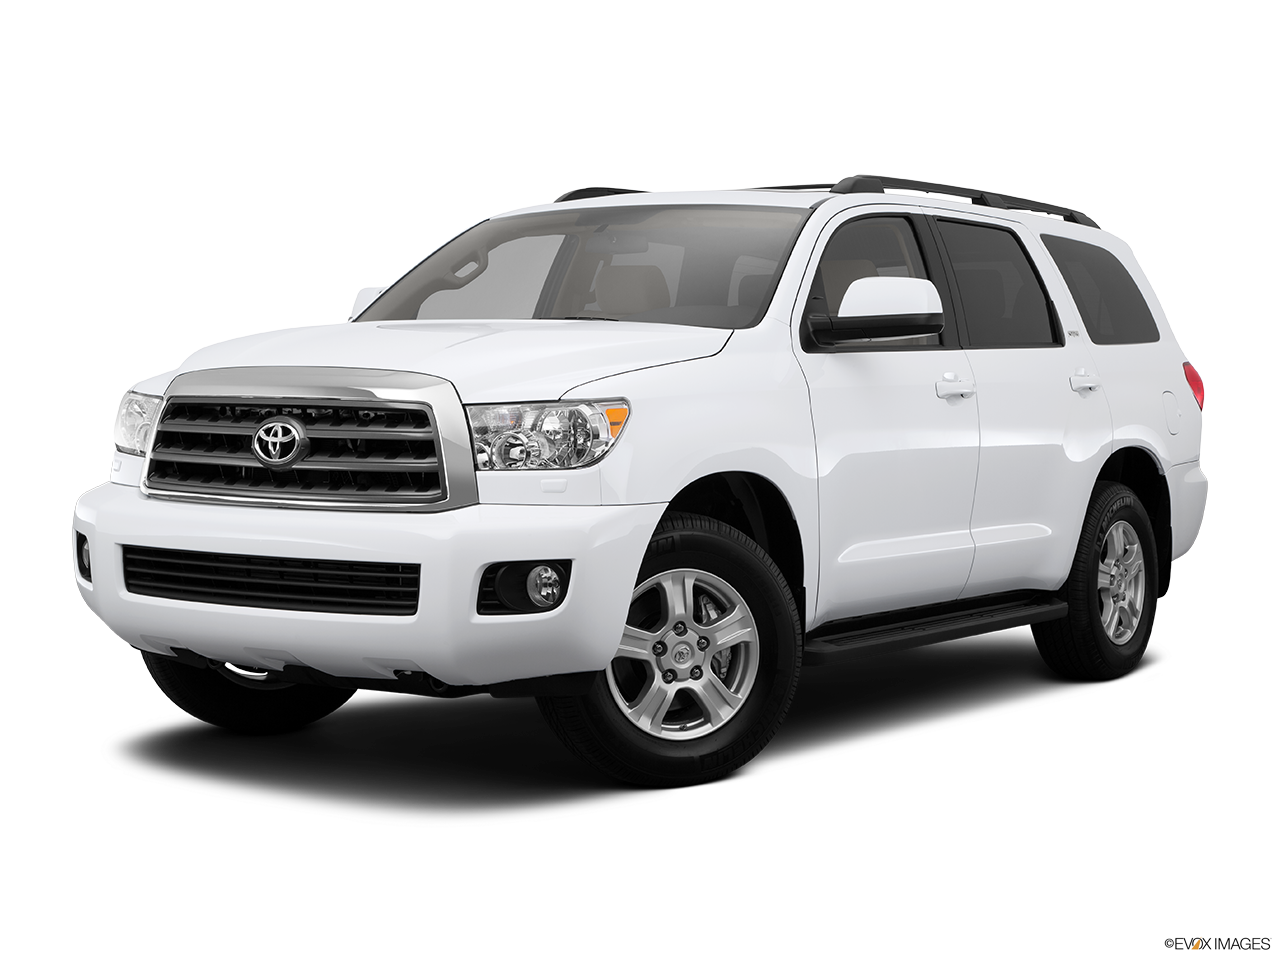 Test Drive A 2016 Toyota Sequoia at Toyota of Glendale in Los Angeles